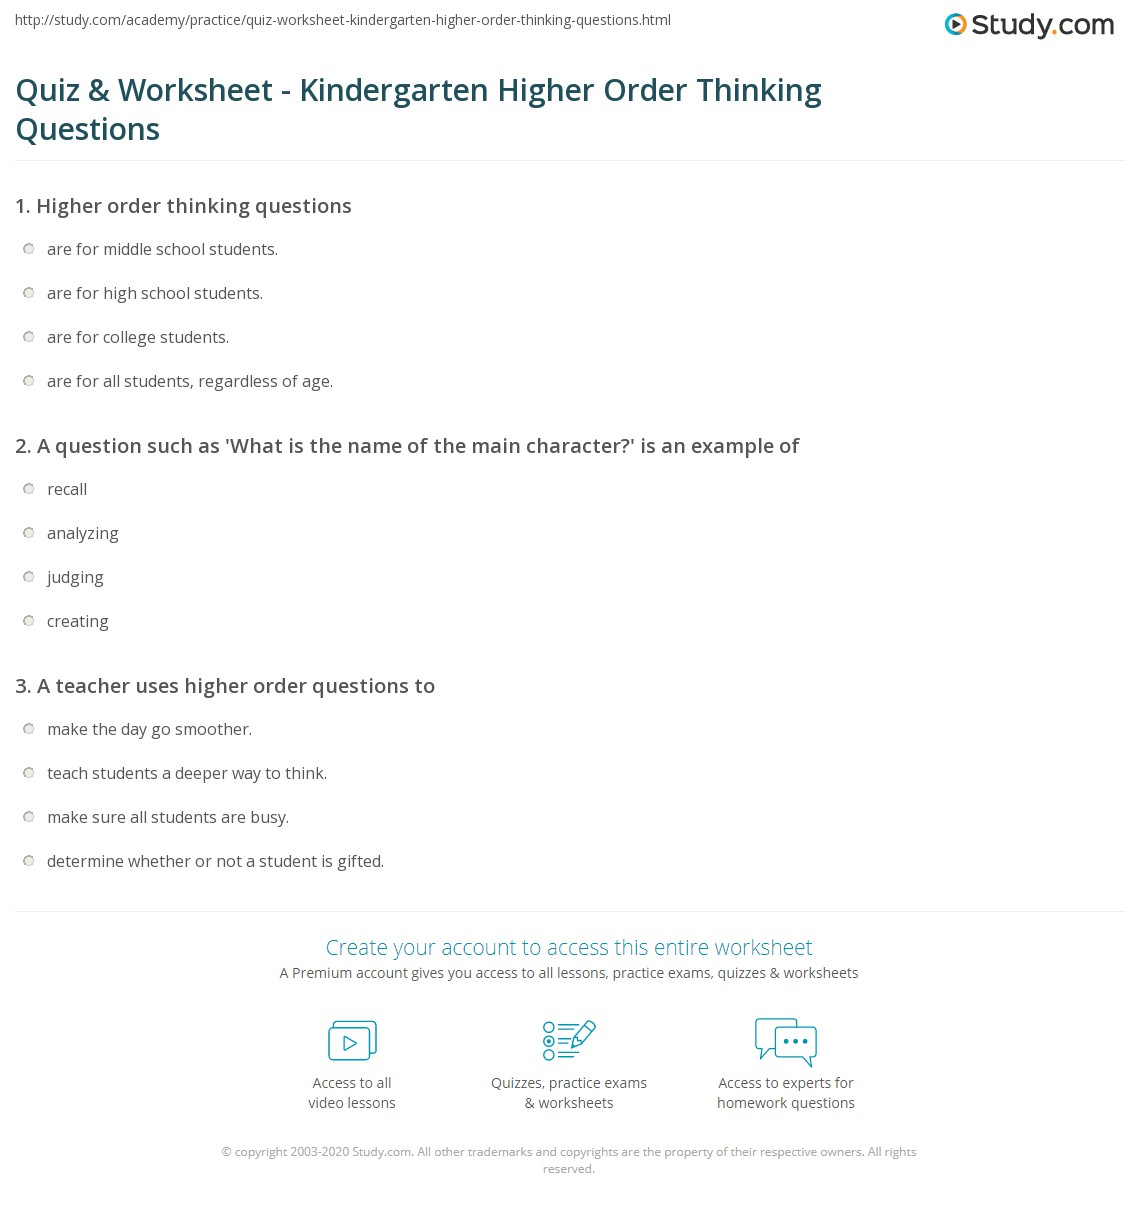 Worksheets Questions For Kindergarten quiz worksheet kindergarten higher order thinking questions print for kindergartners worksheet